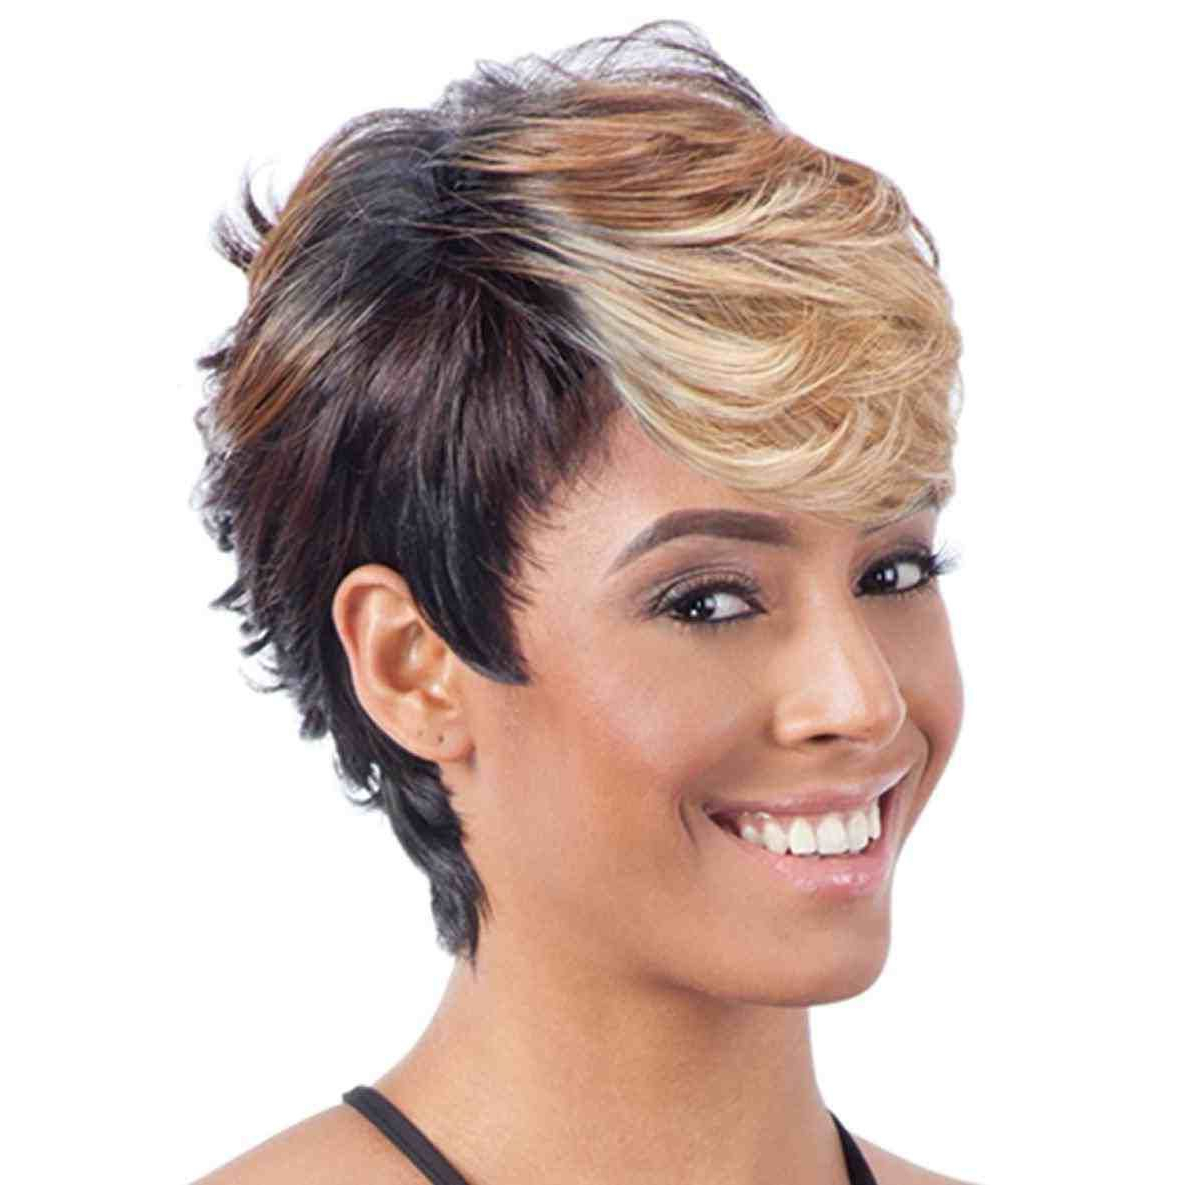 New Post Very Short Hairstyles For Black Women With Thick Hair pertaining to Short Haircuts For Black Women With Thick Hair